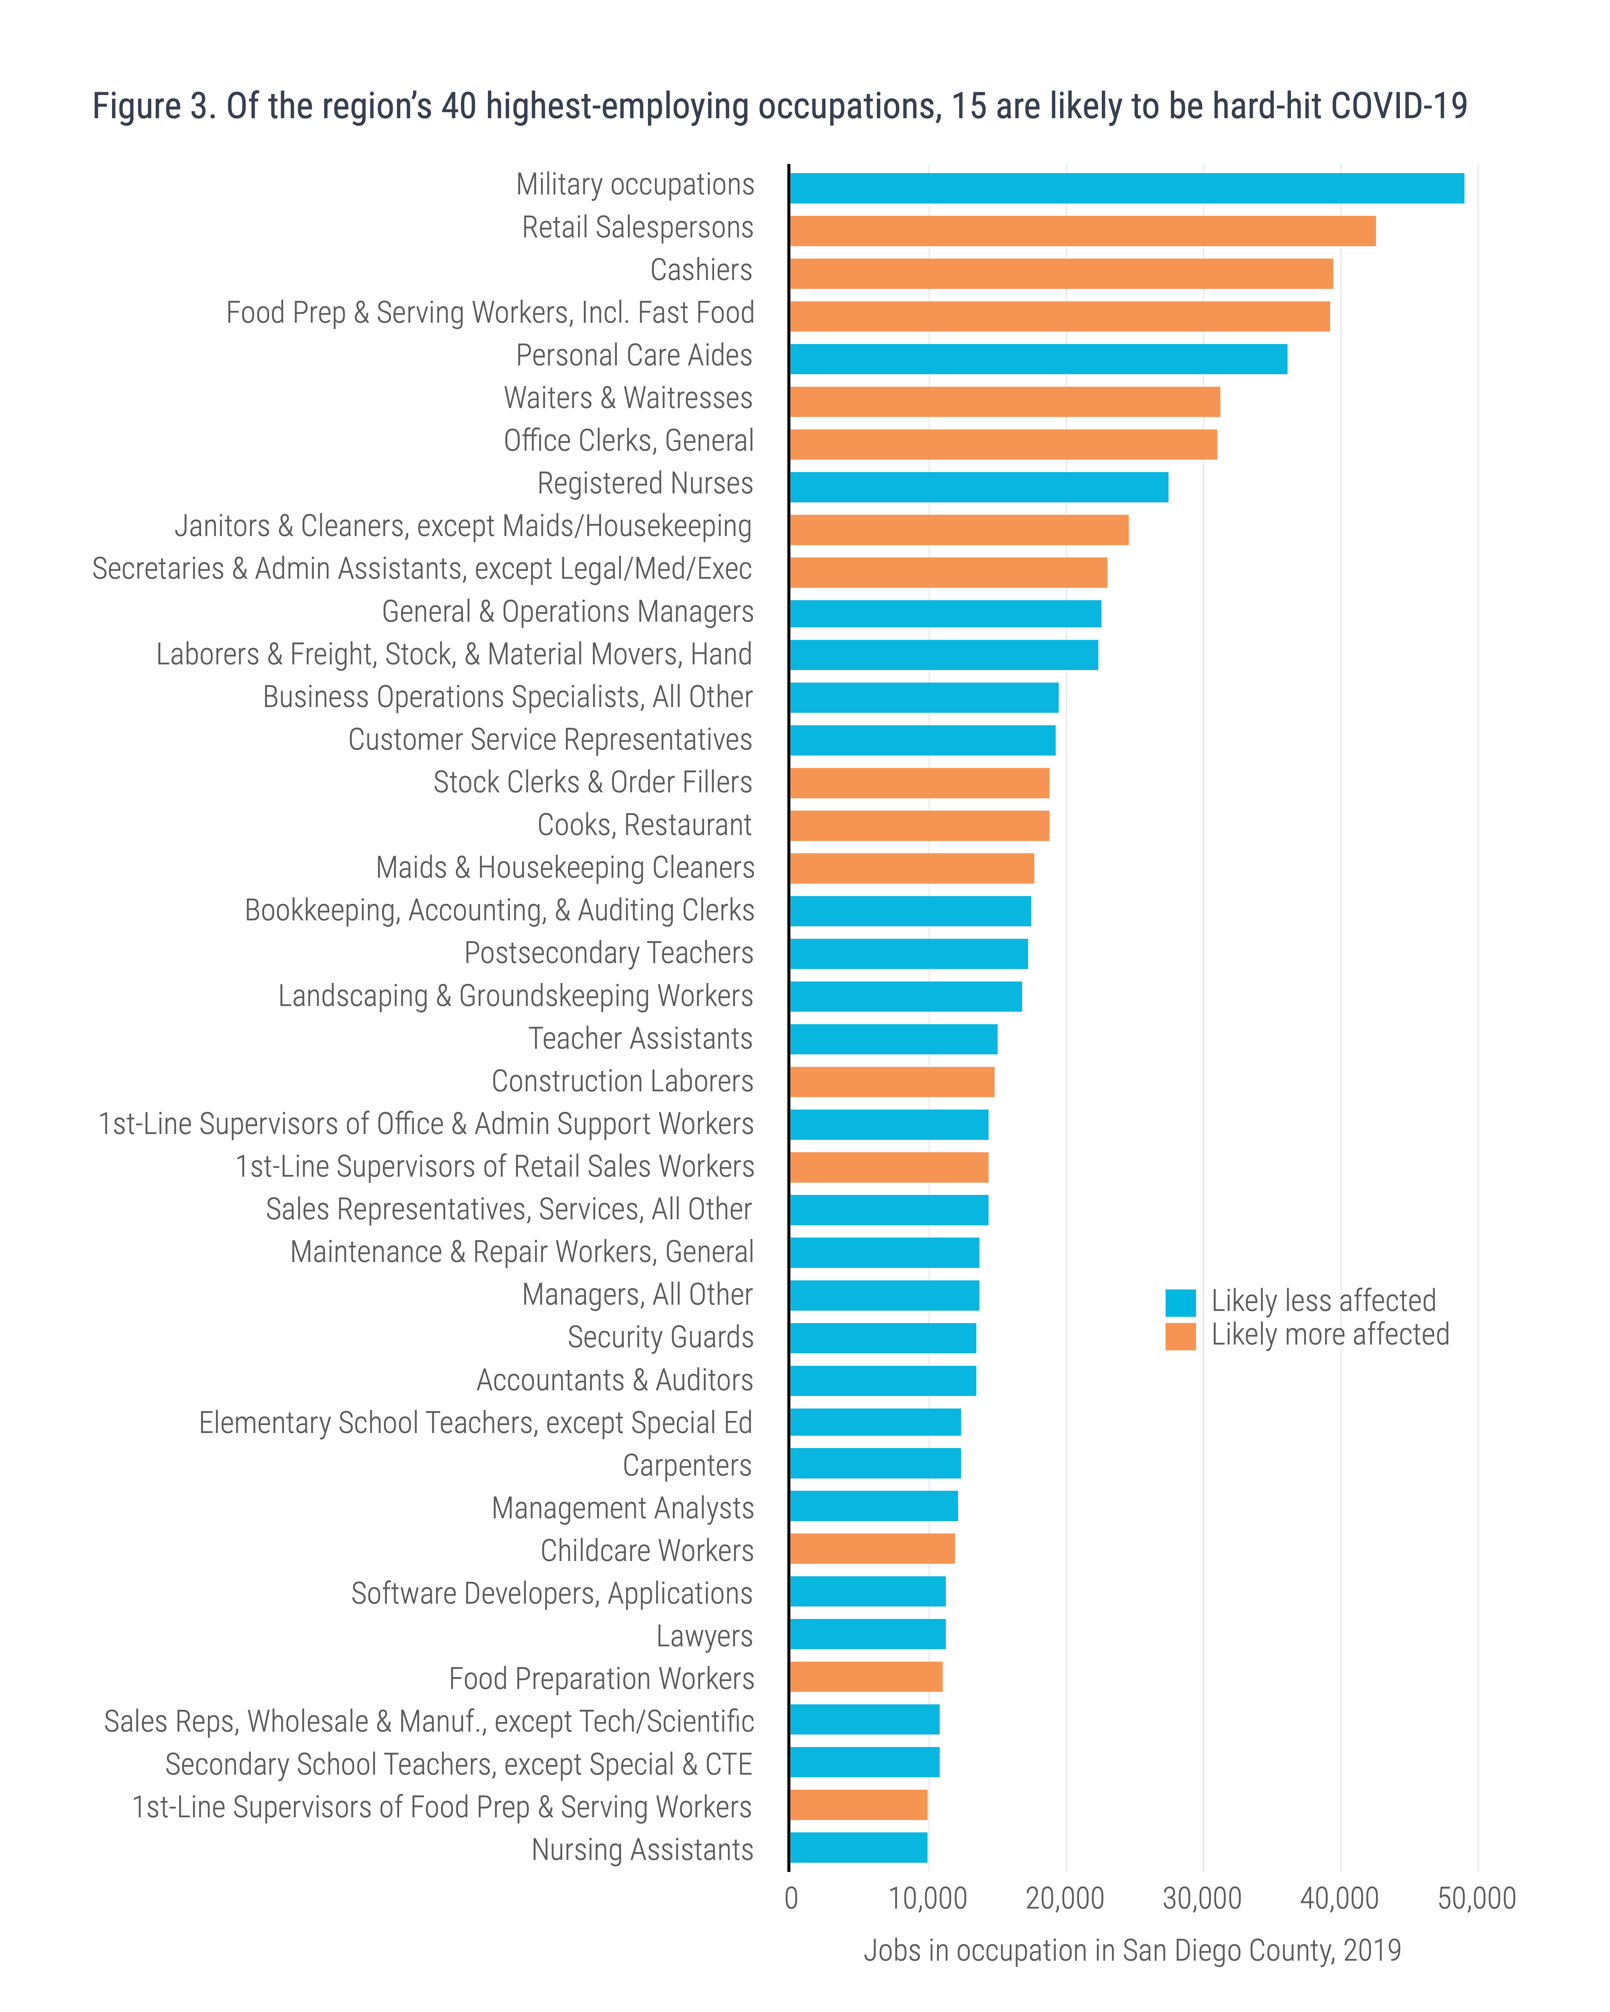 Figure 3. Of the region's 40 highest-employing occupations, 15 are likely to be hard-hit COVID-19